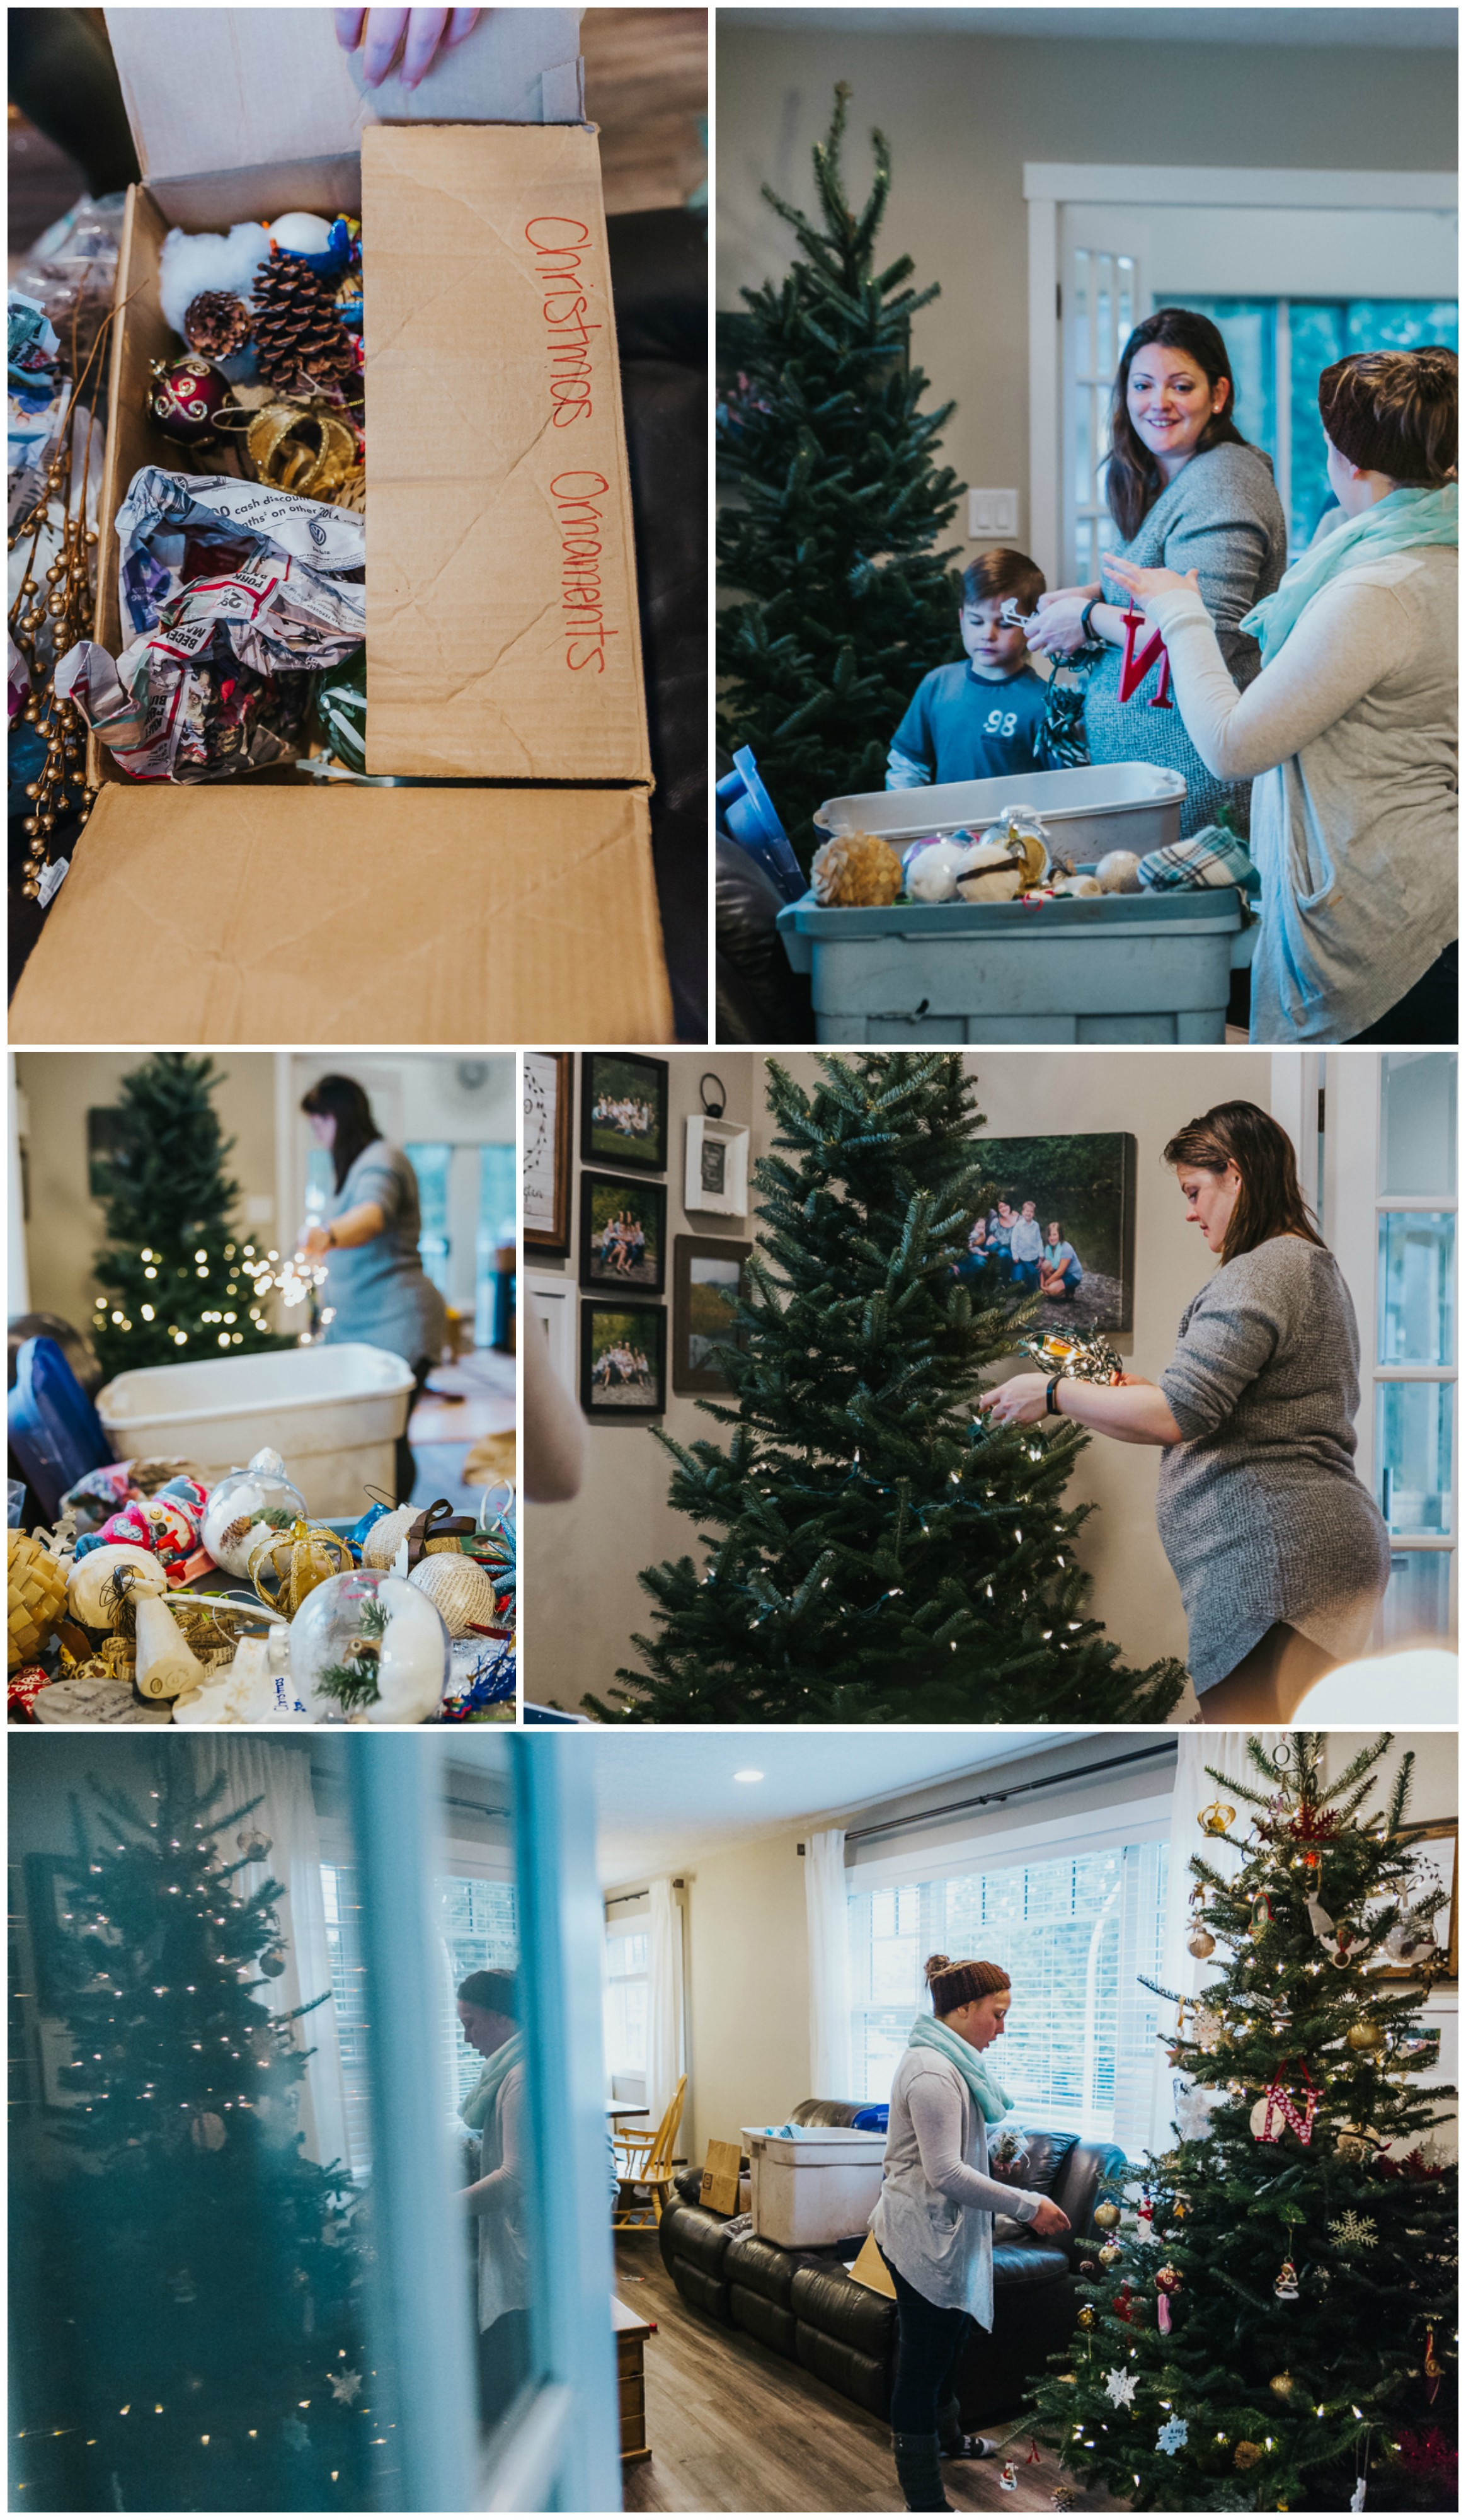 Decorating the christmas tree with love - full of oraments that each have their own story.  In home tree decorating traditions,  Documentary Family Holiday Tradition, Real life moments with a family of 7 by Mimsical Photography. West Coast photographer in Lower Mainland, British Columbia